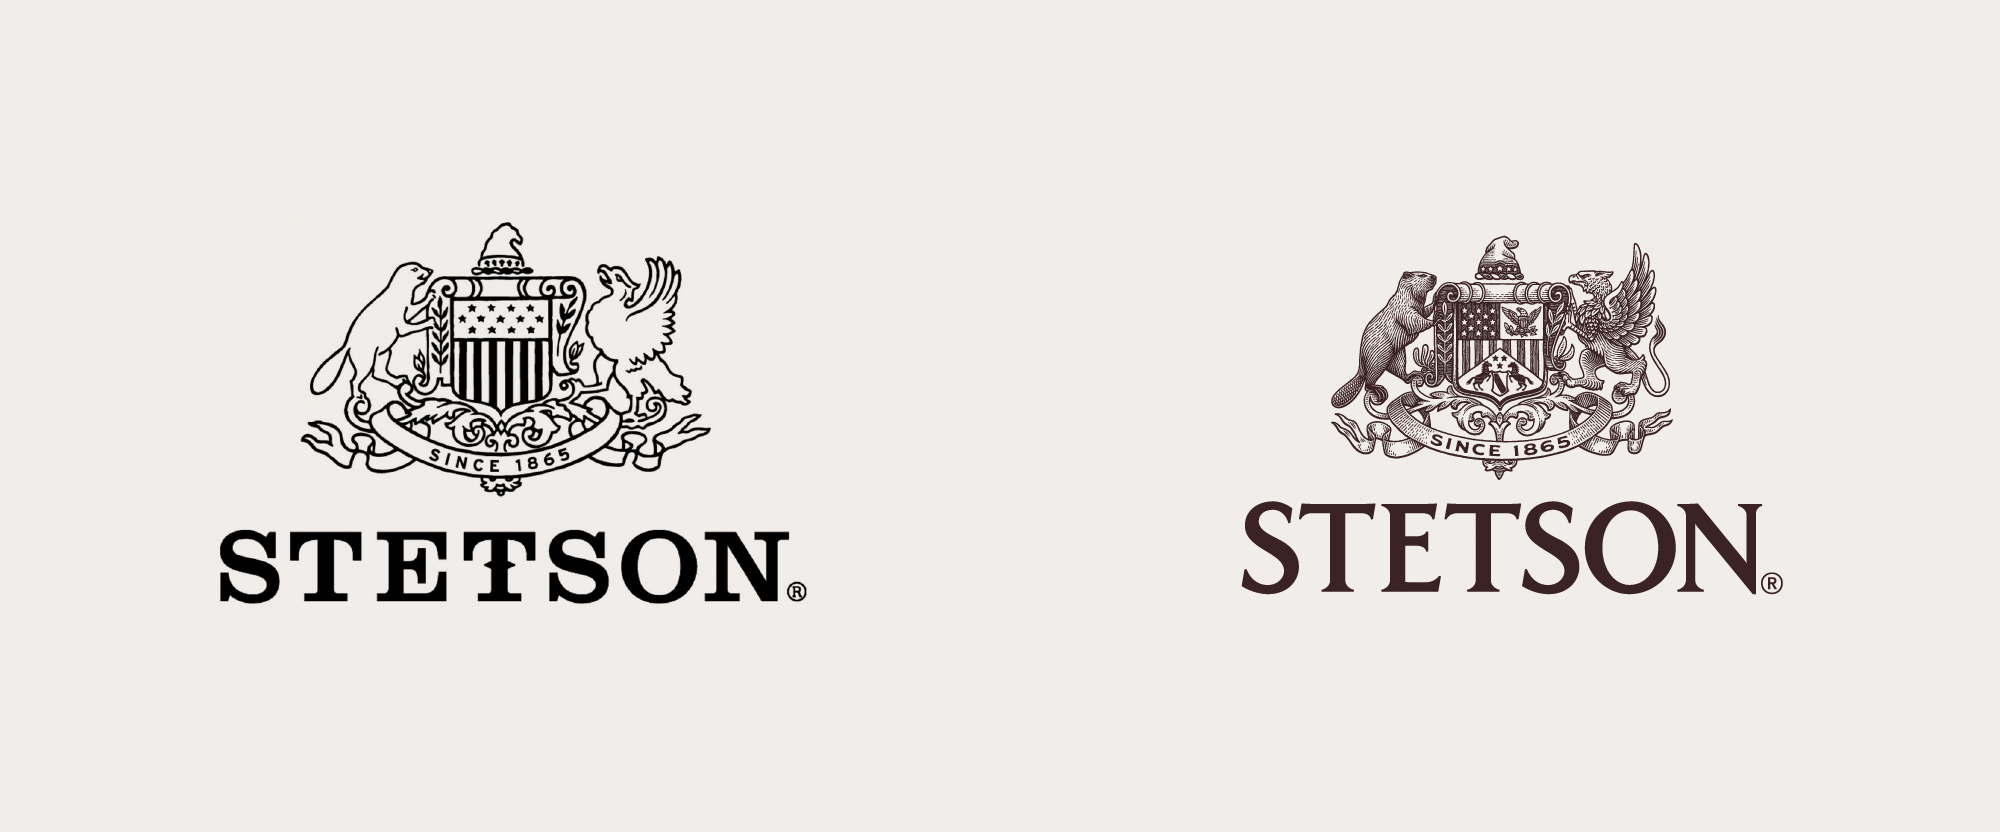 New Logo and Identity for Stetson by Tractorbeam